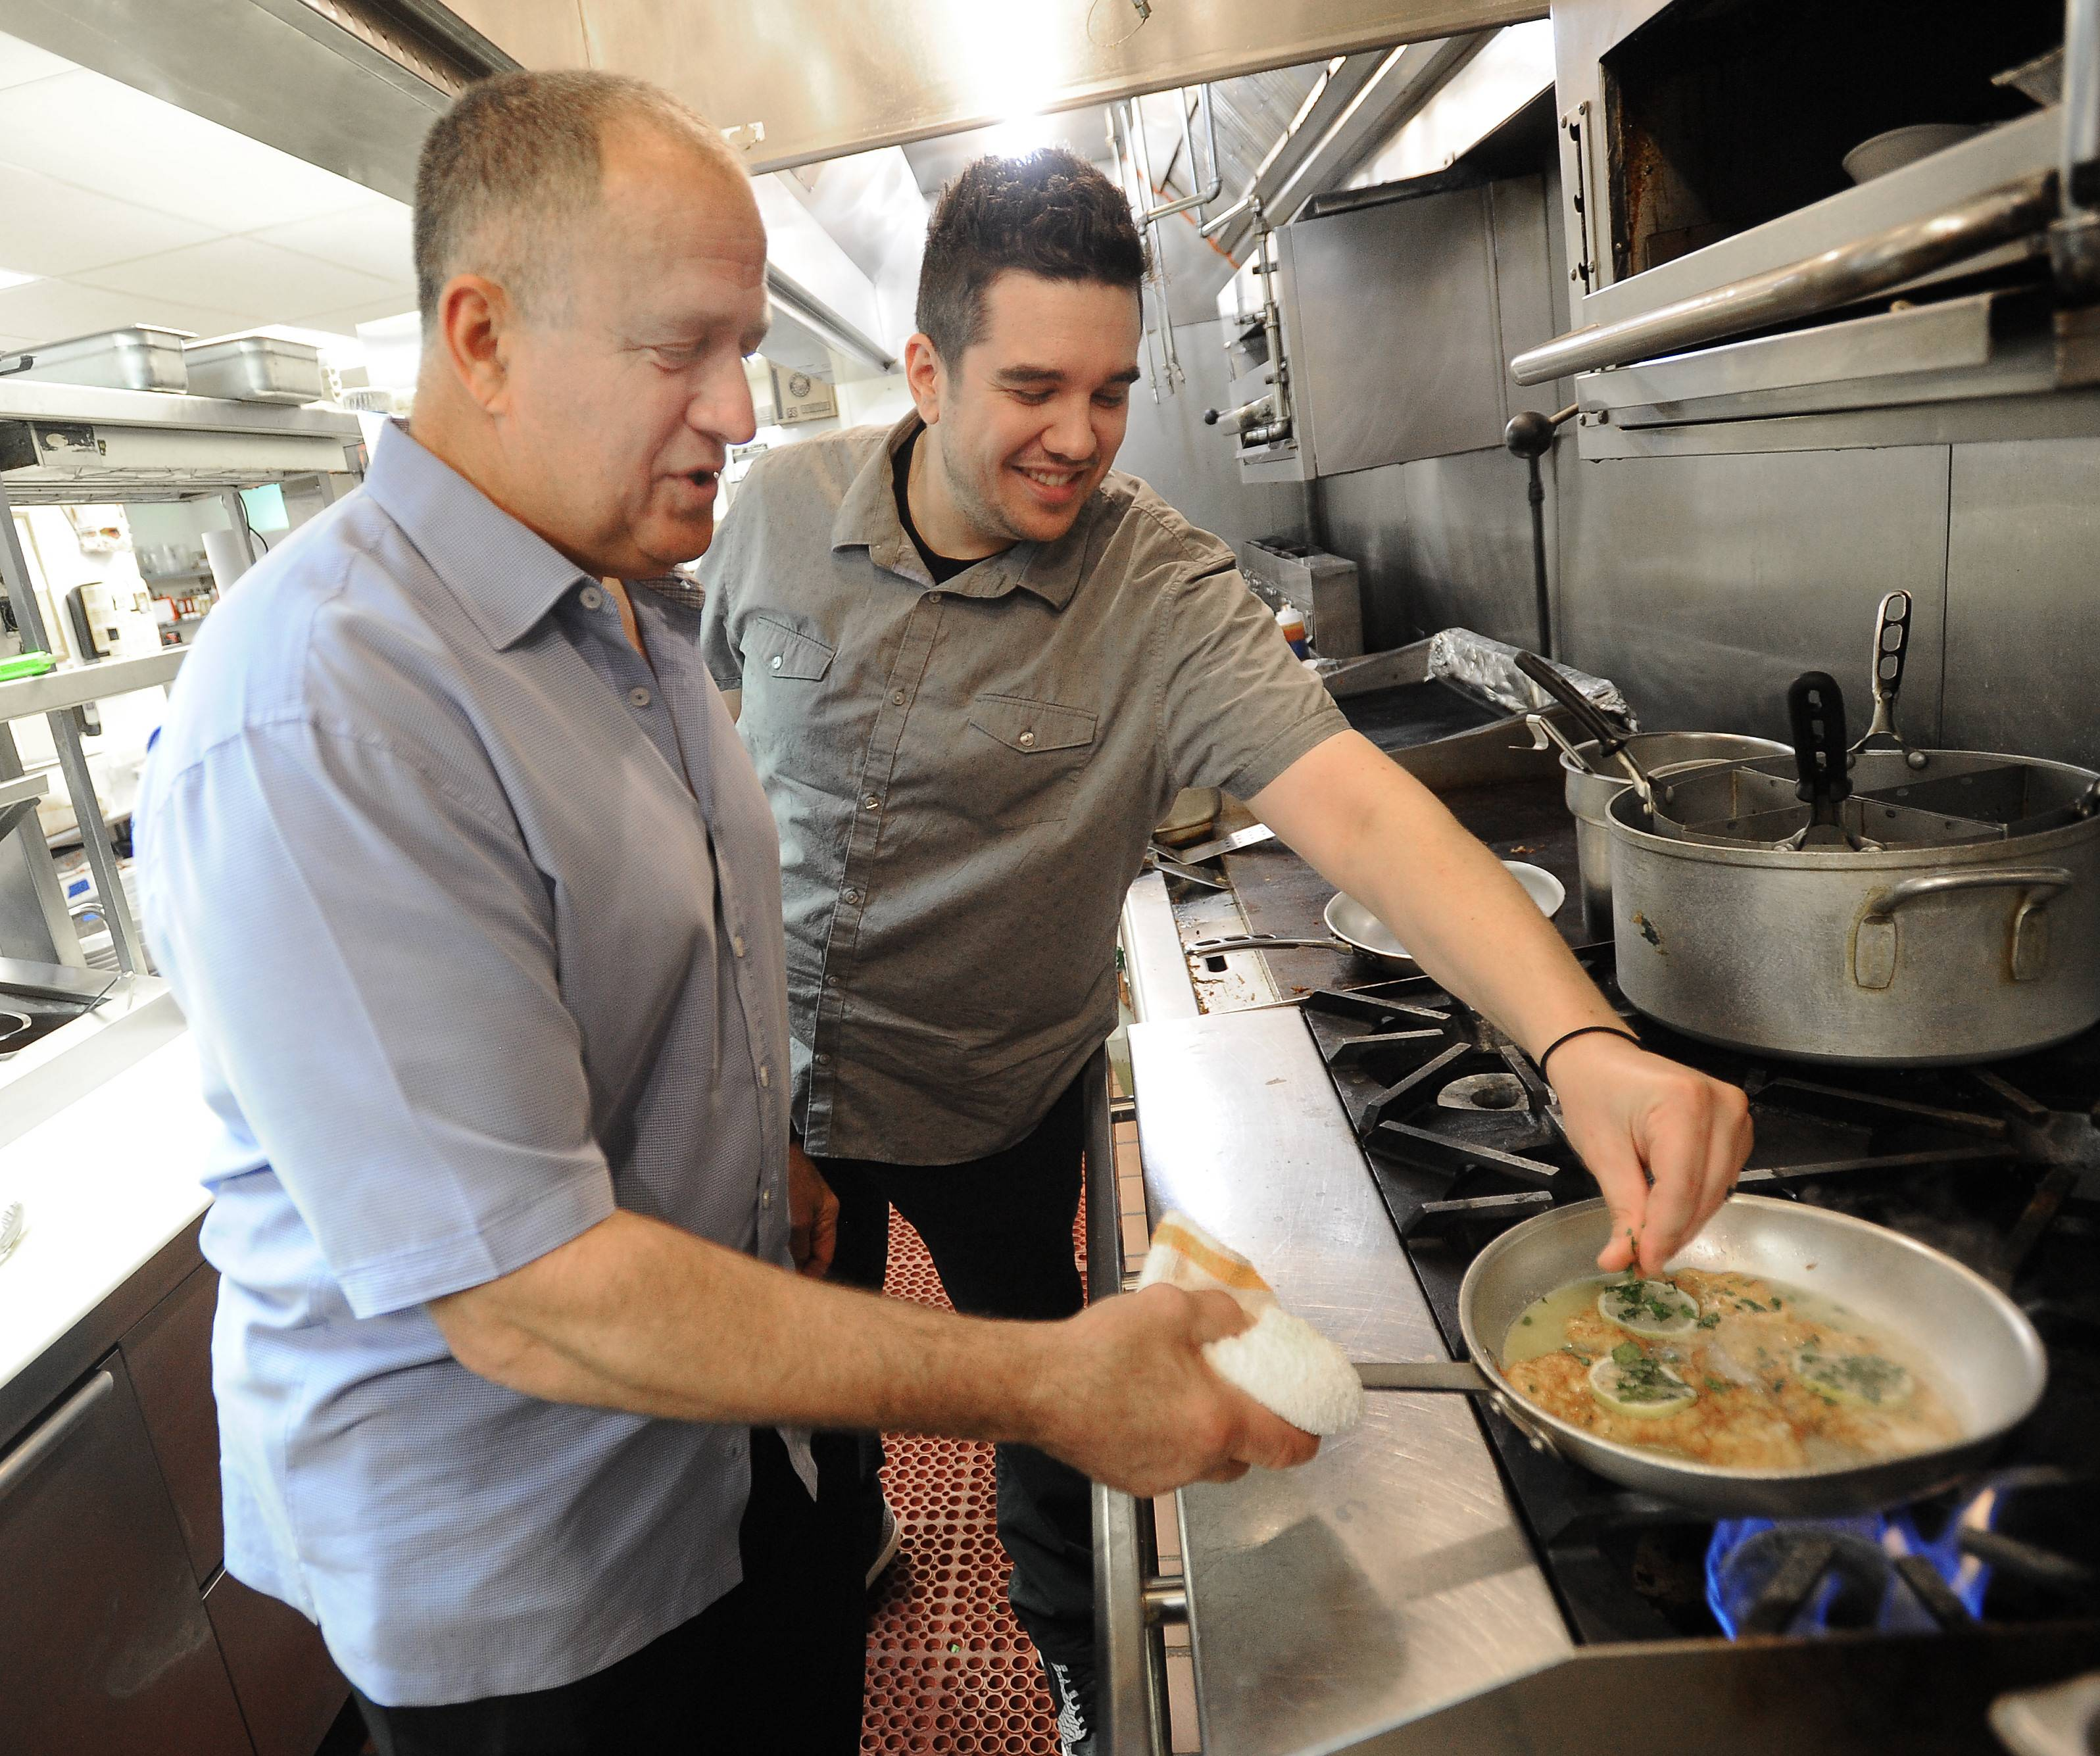 Butch Navarro and his son Mike Navarro, both of Elmhurst, are in charge of the kitchen management at Durty Nellie's in Palatine.